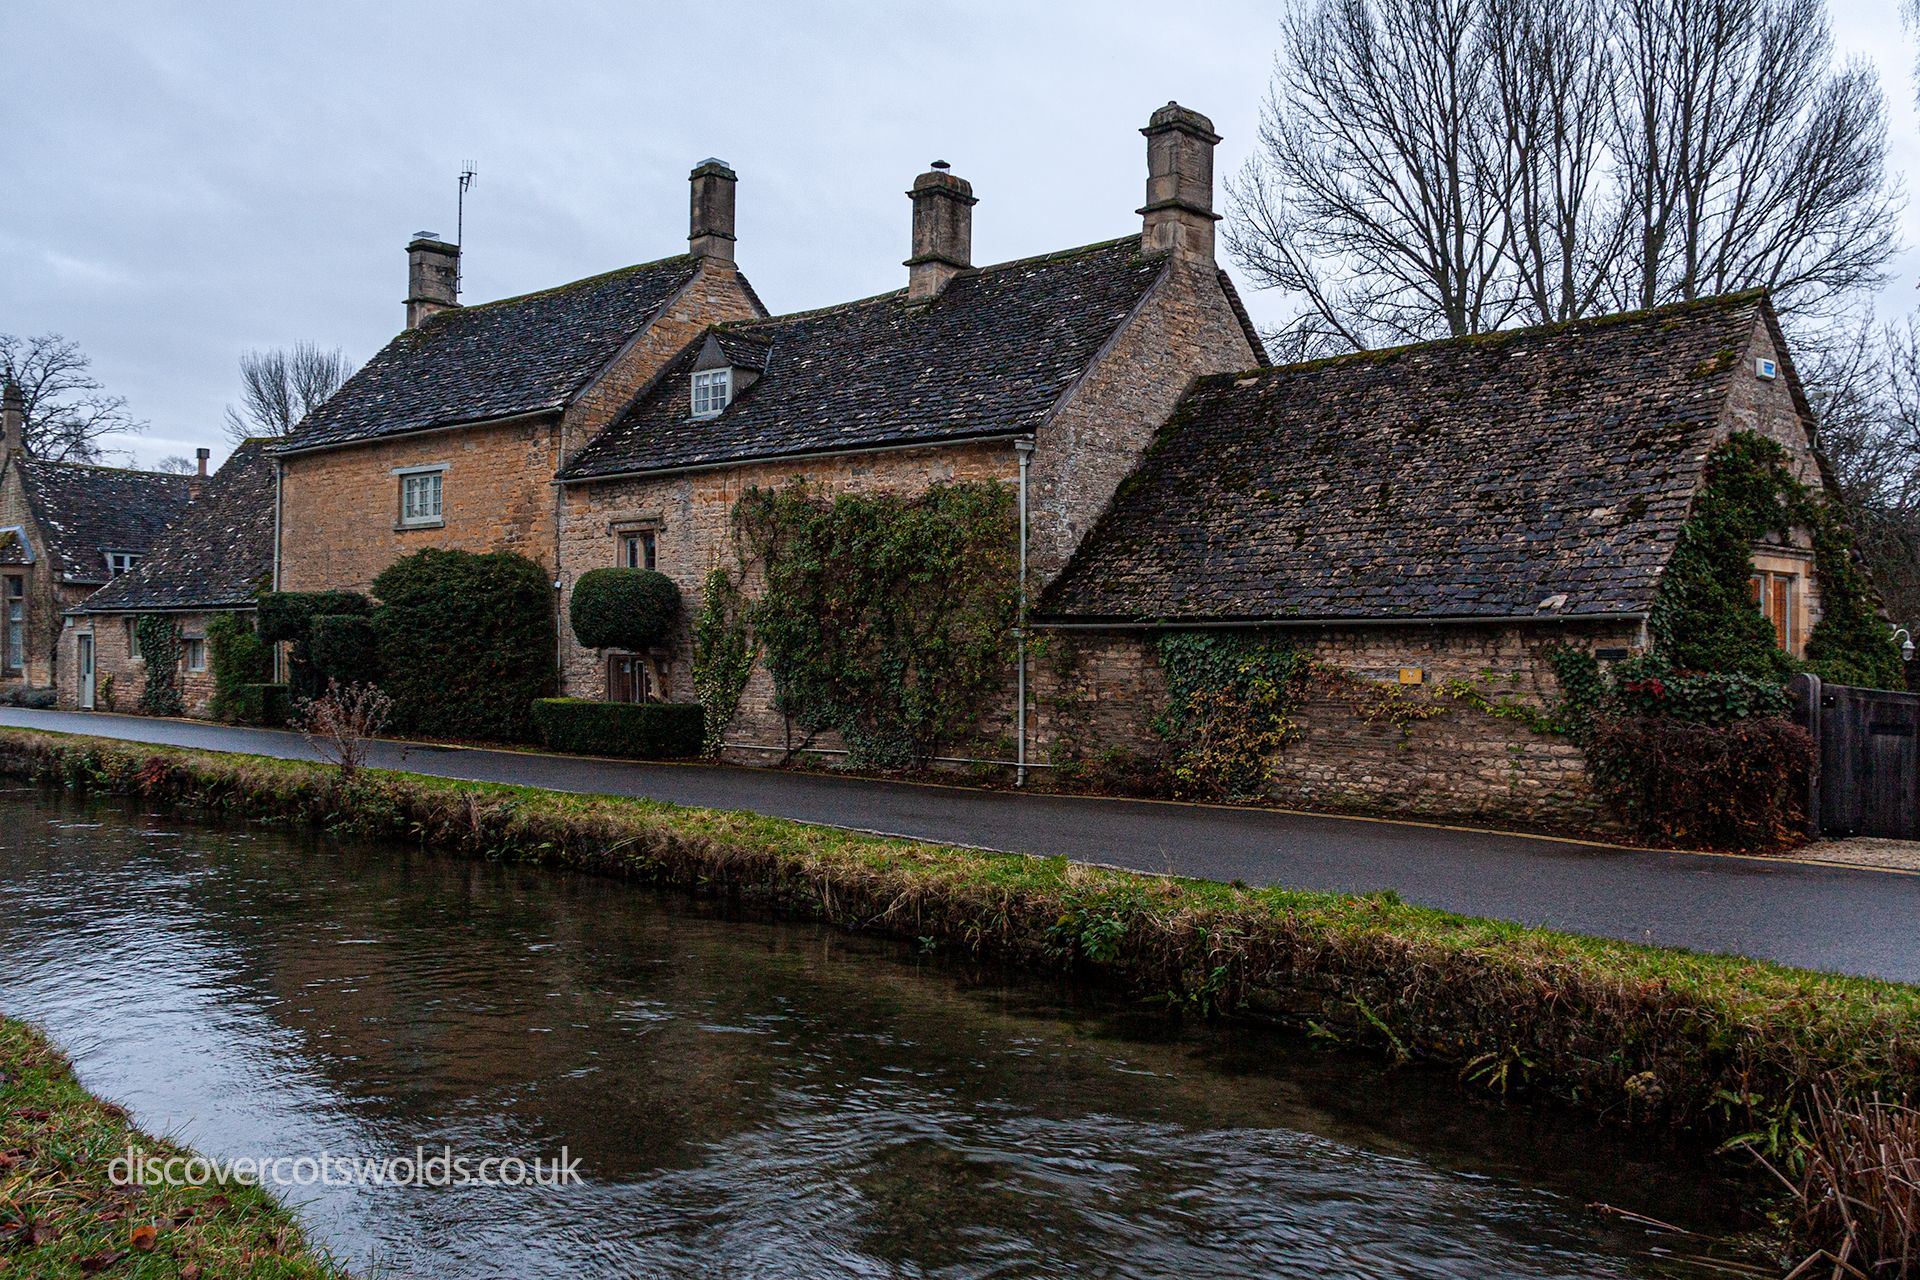 Houses alongside the river Eye in Lower Slaughter